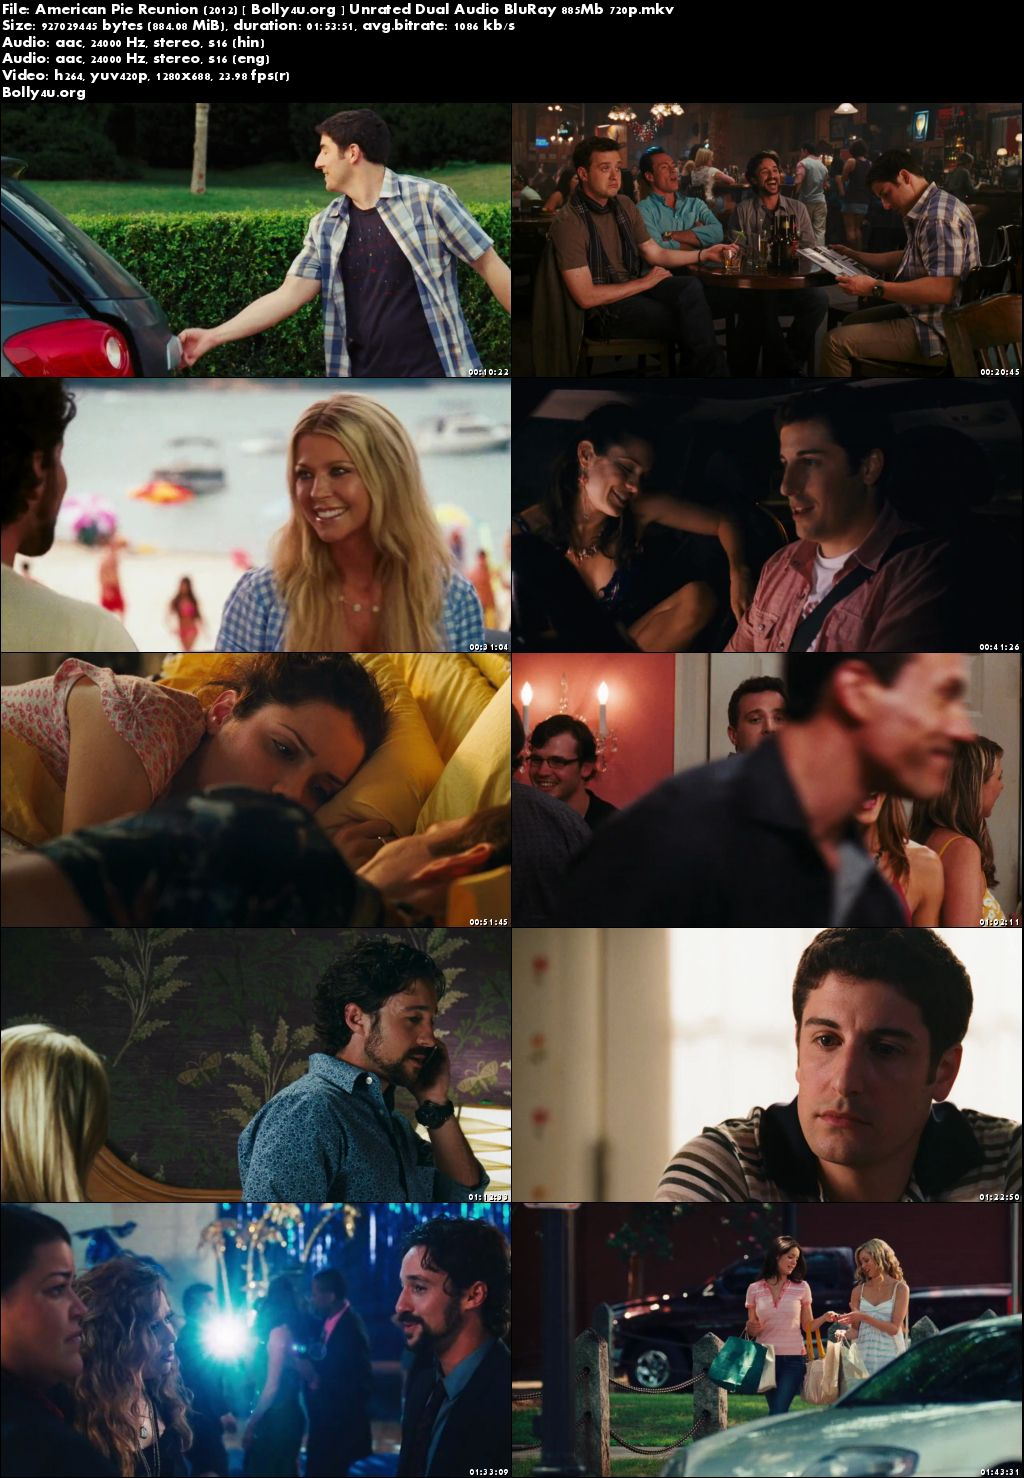 American Pie Reunion 2012 BRRip 850MB UNRATED Hindi Dual Audio 720p Download